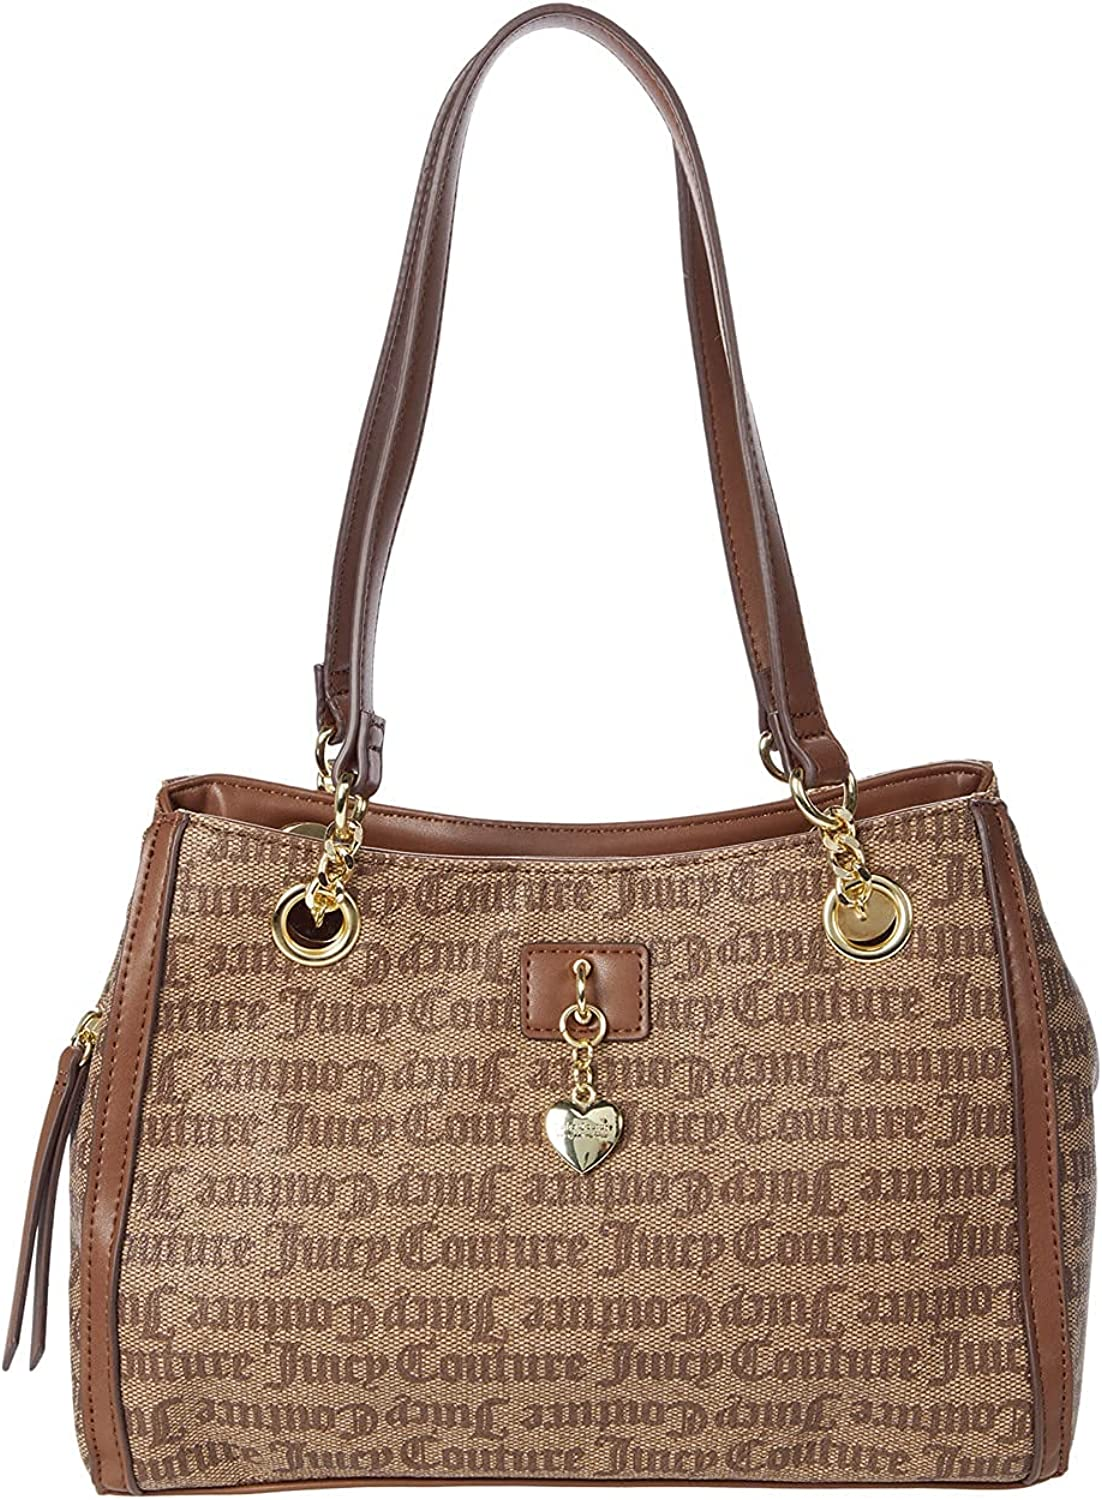 Finally resale start Juicy Couture Charm City Satchel Omaha Mall